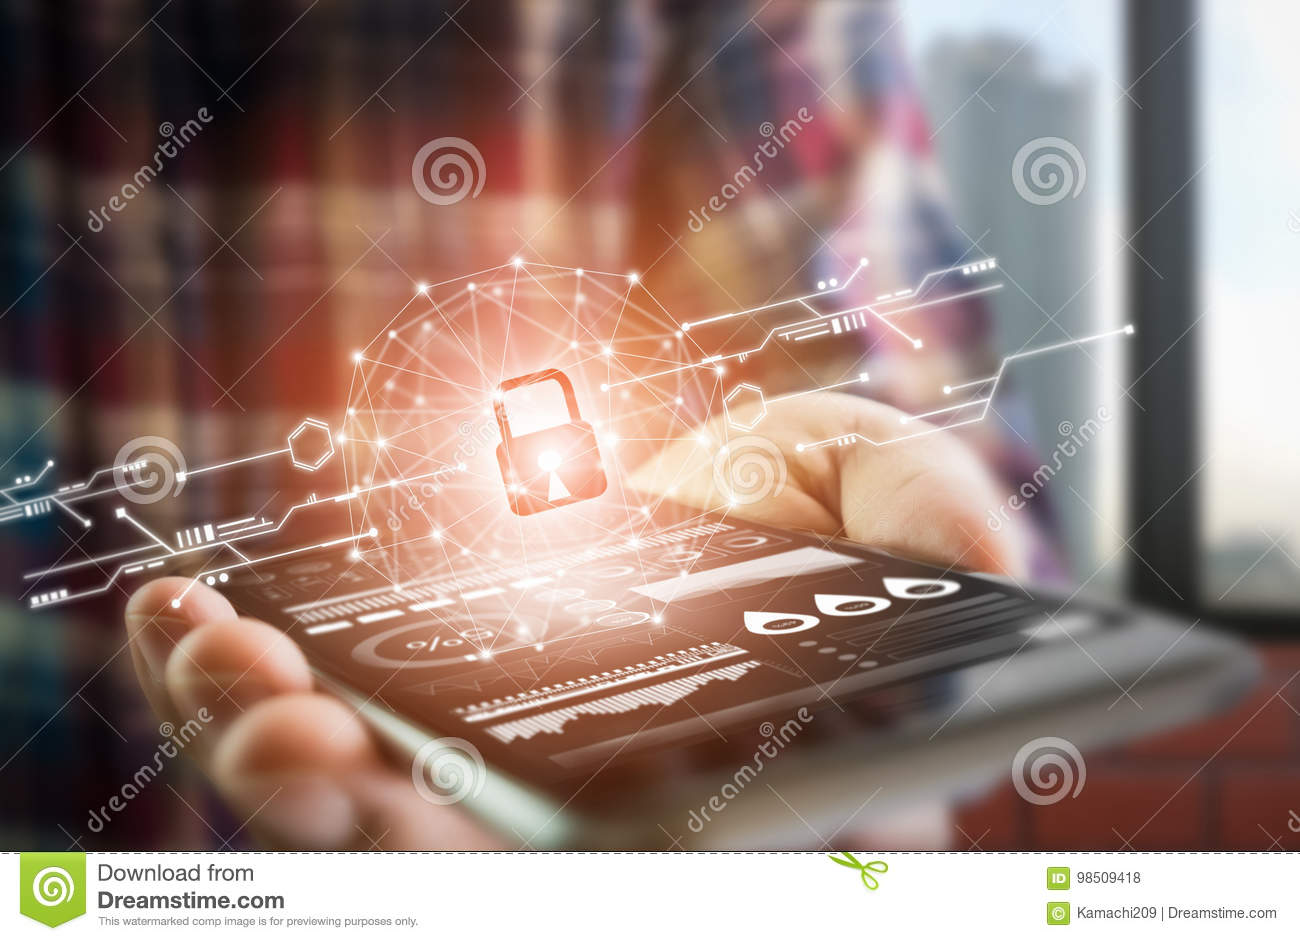 Men dress up lifestyle hold smartphone screen shows the key in the Security online world. the display and technology advances